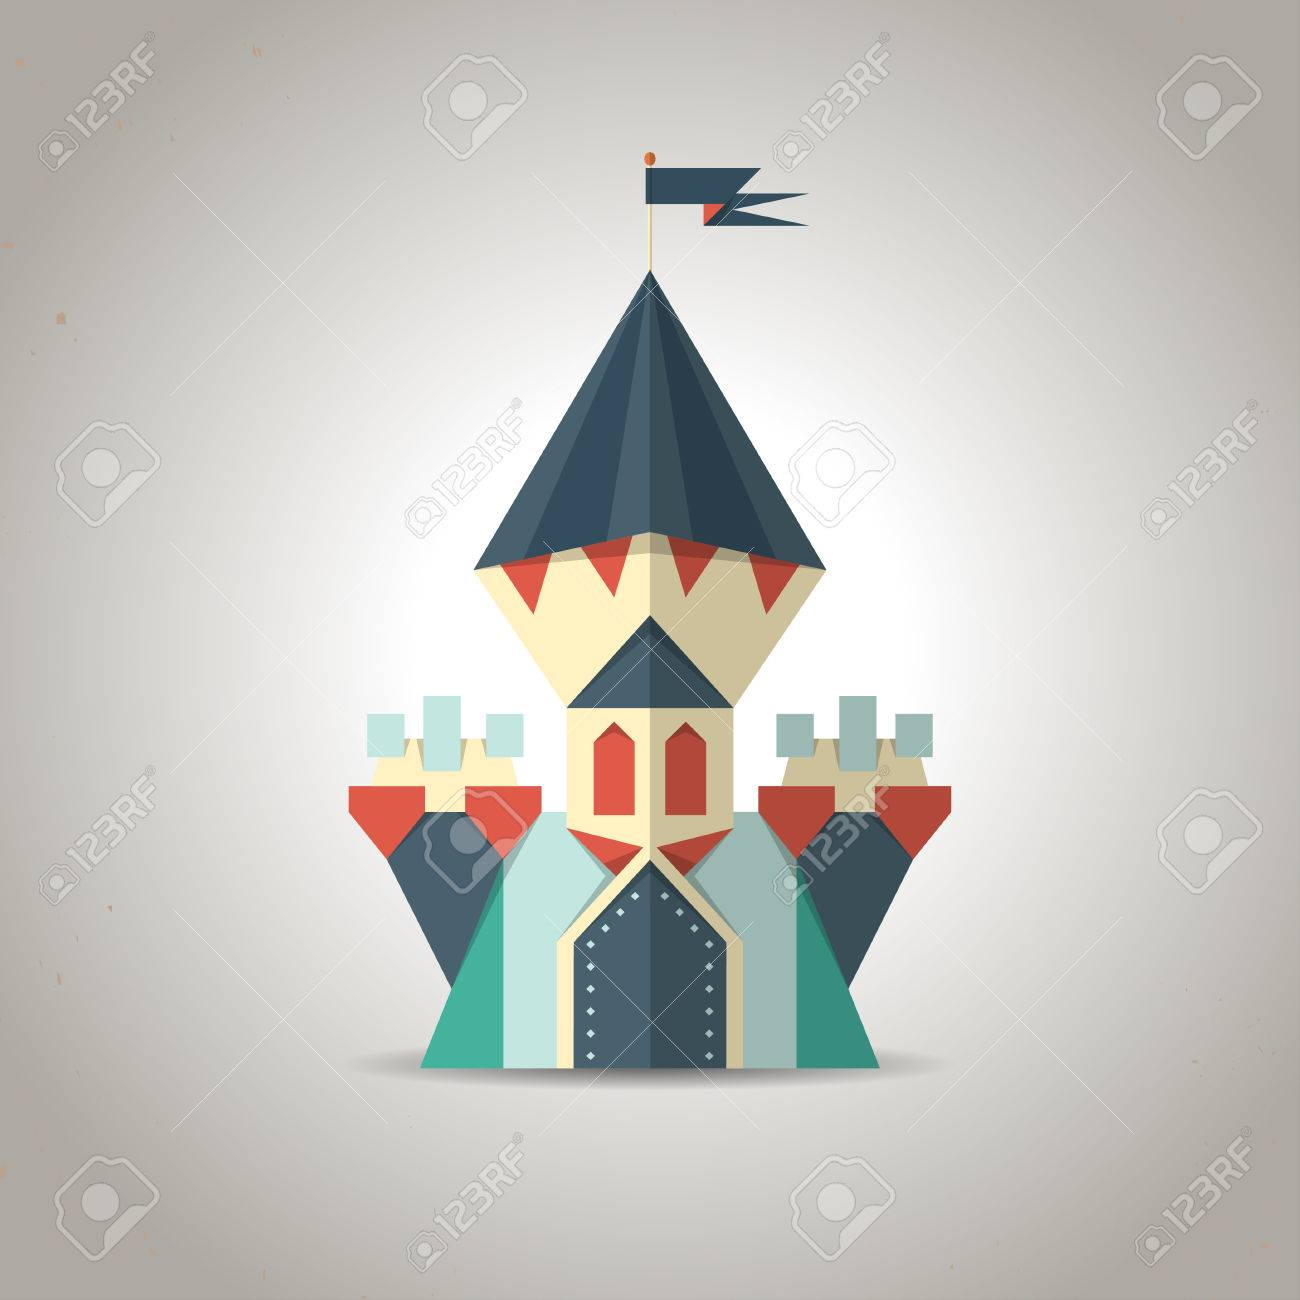 Illustration of a cute origami castle icon made from folded paper in the Japanese tradition Stock Vector - 24637019